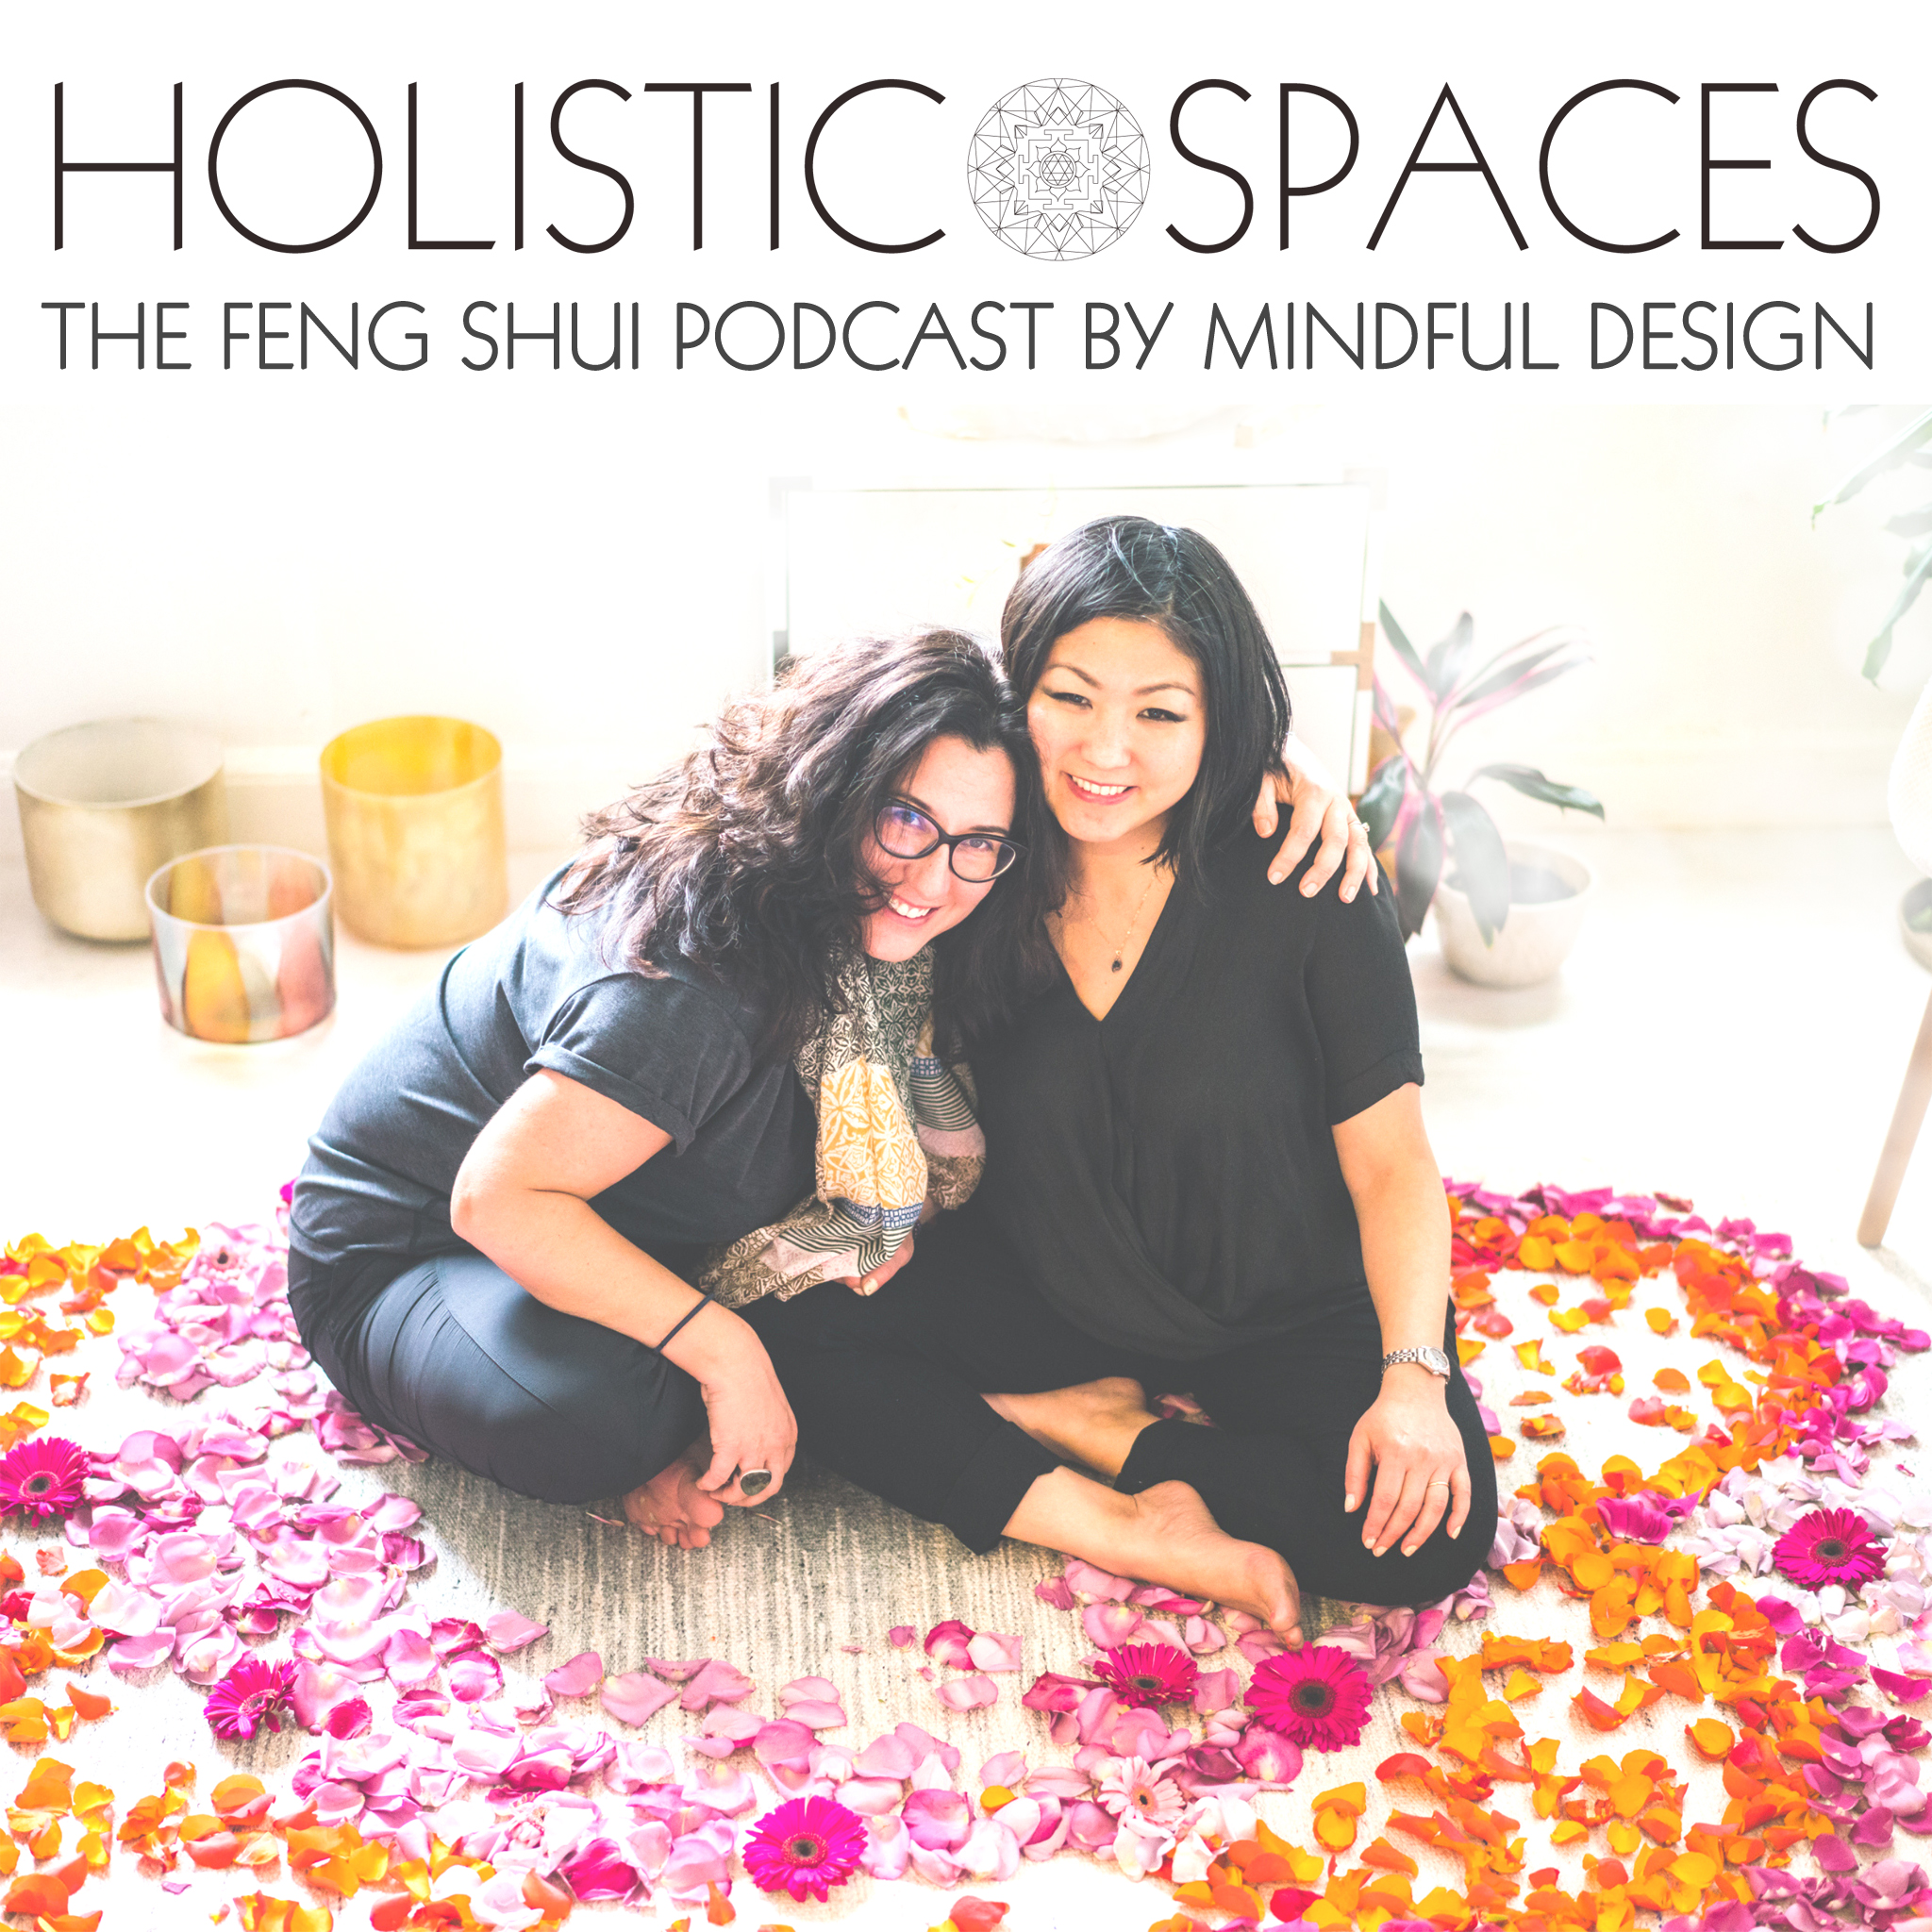 Holistic Spaces: the feng shui podcast by mindful design